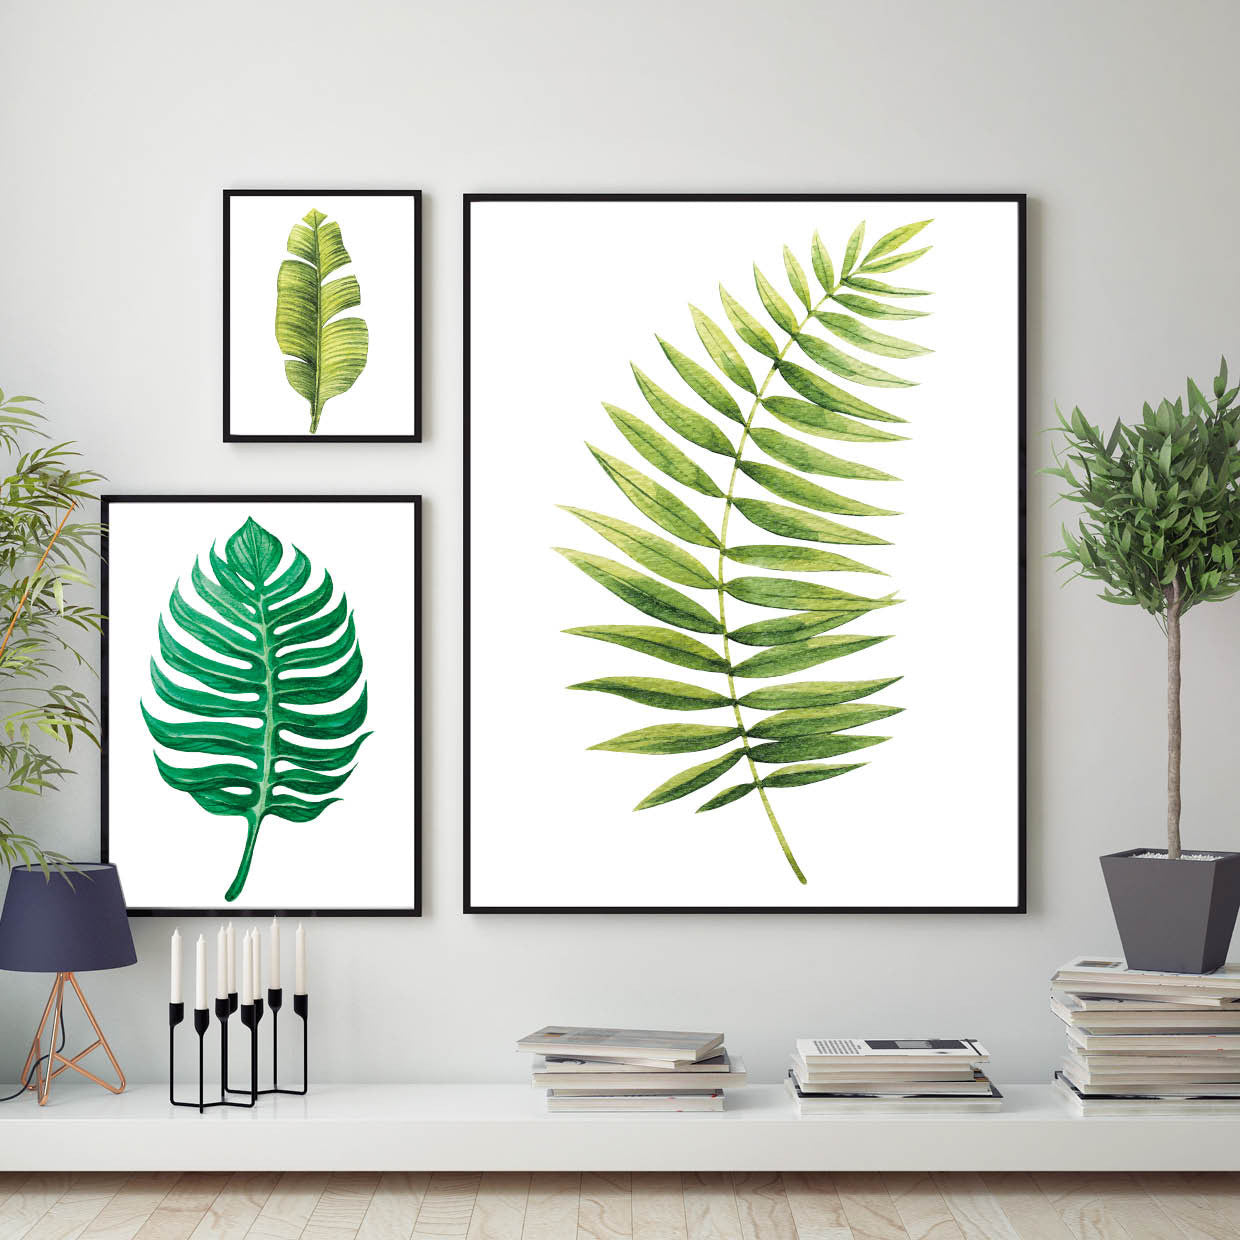 Home Decor Wall Art Prints & Posters